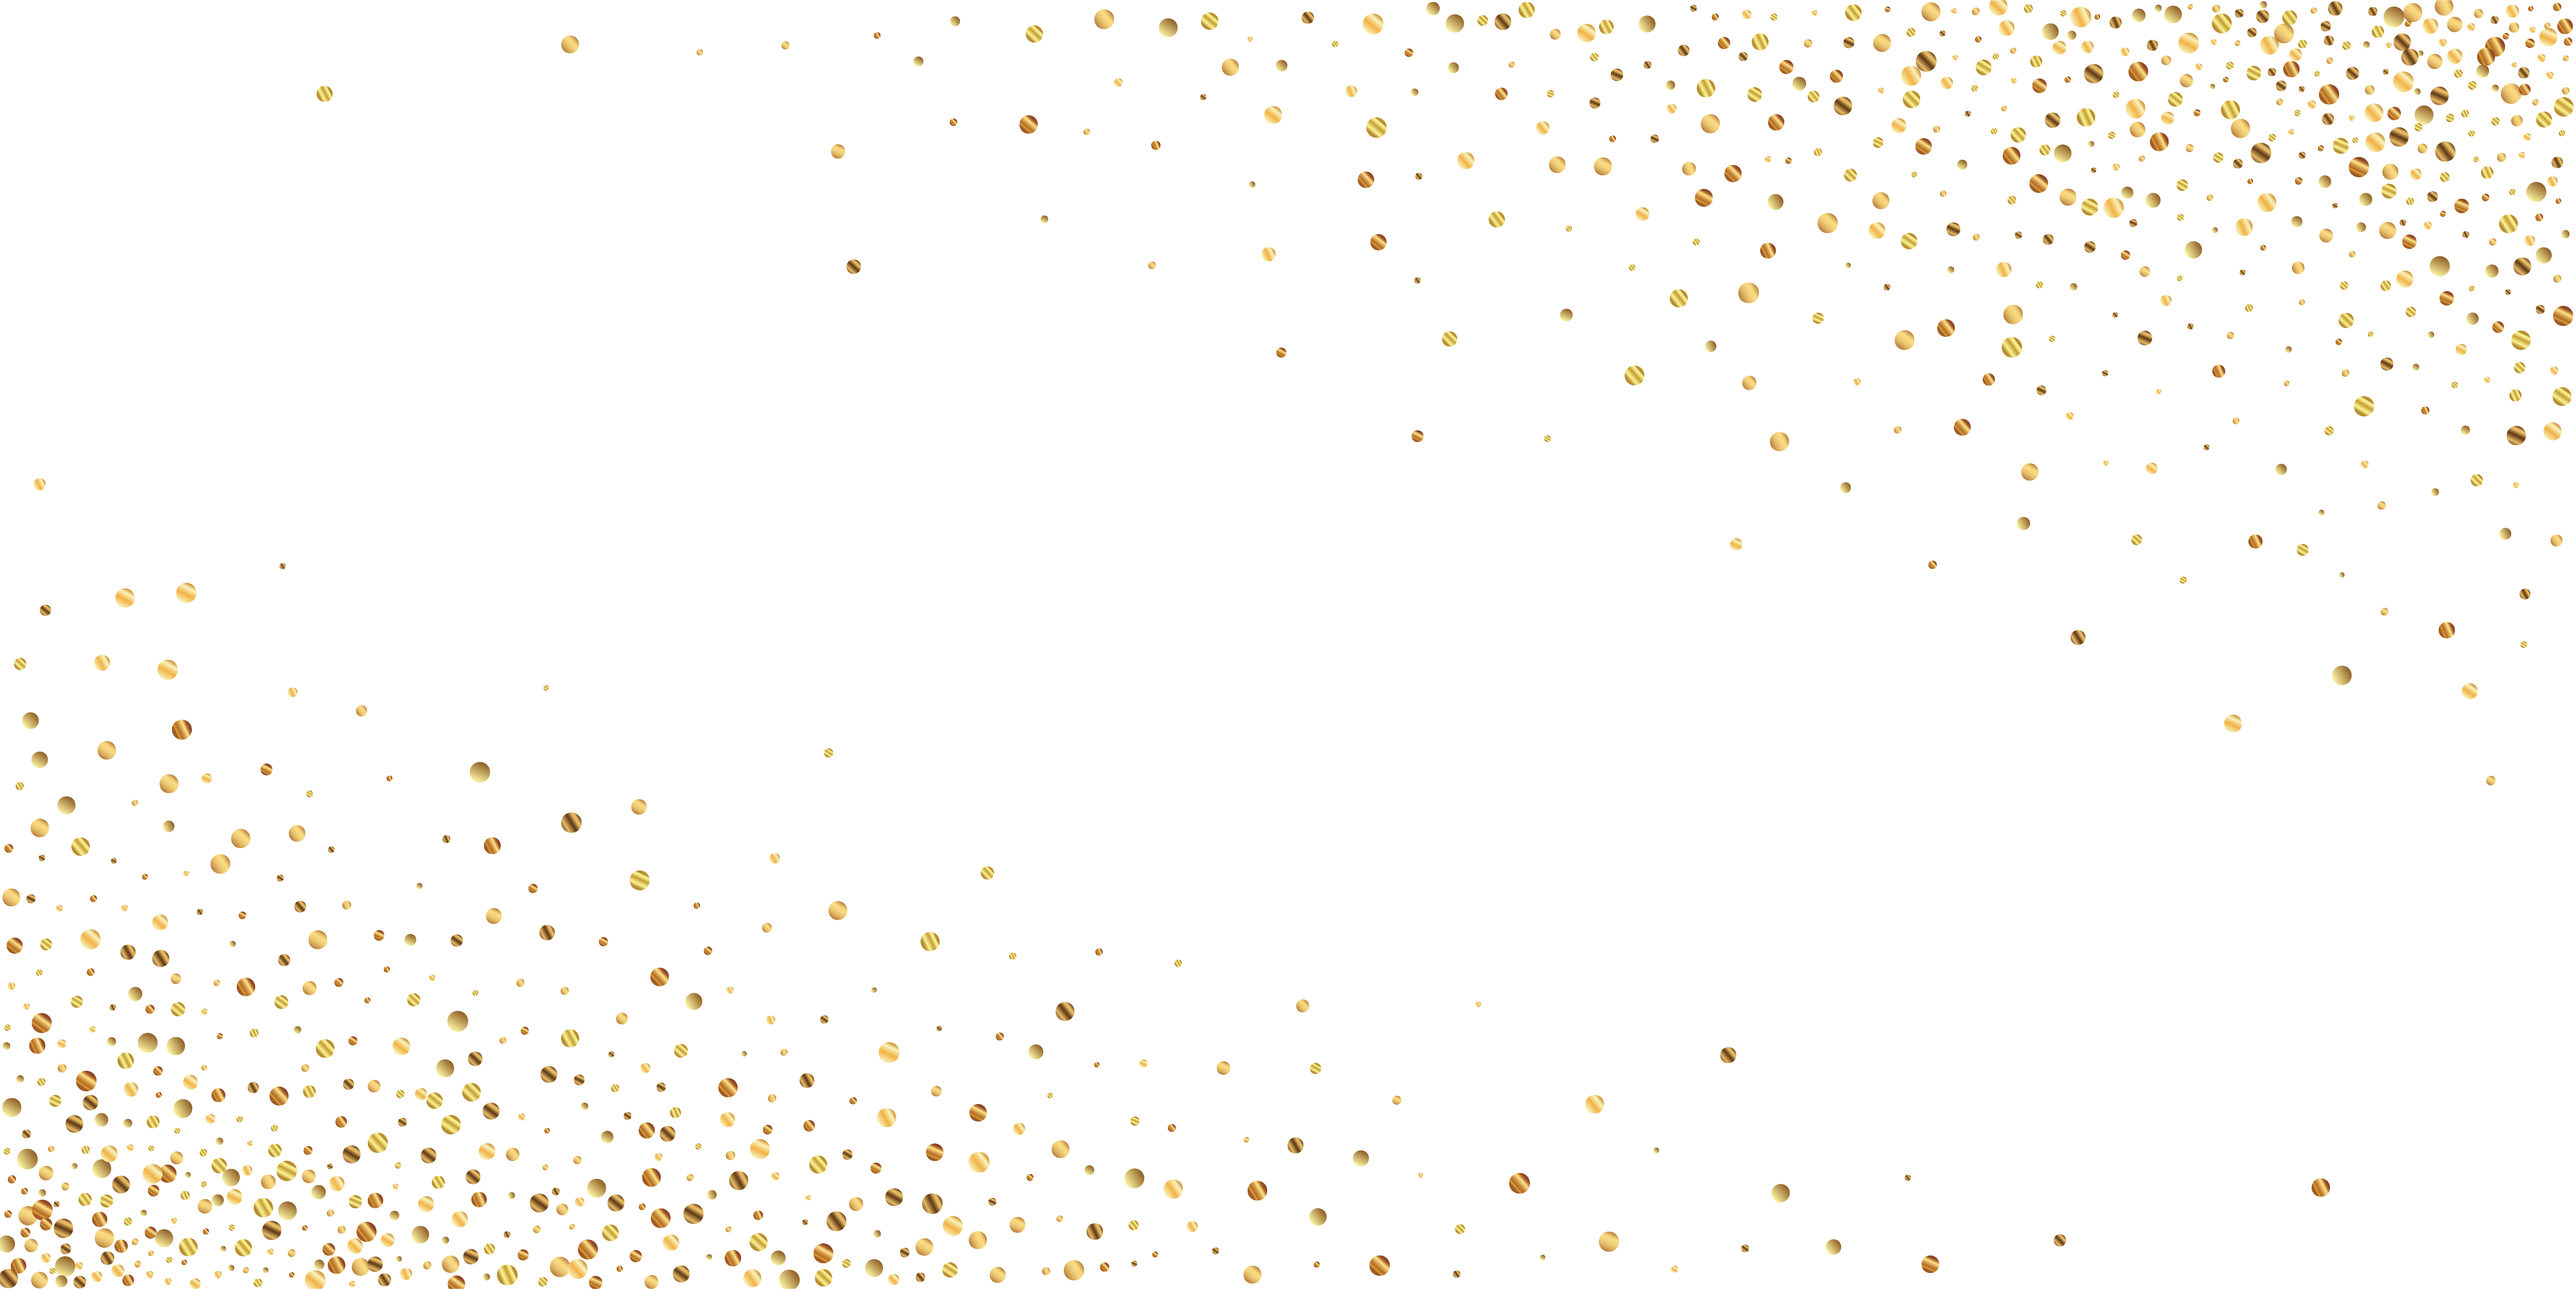 About page glitter overlay